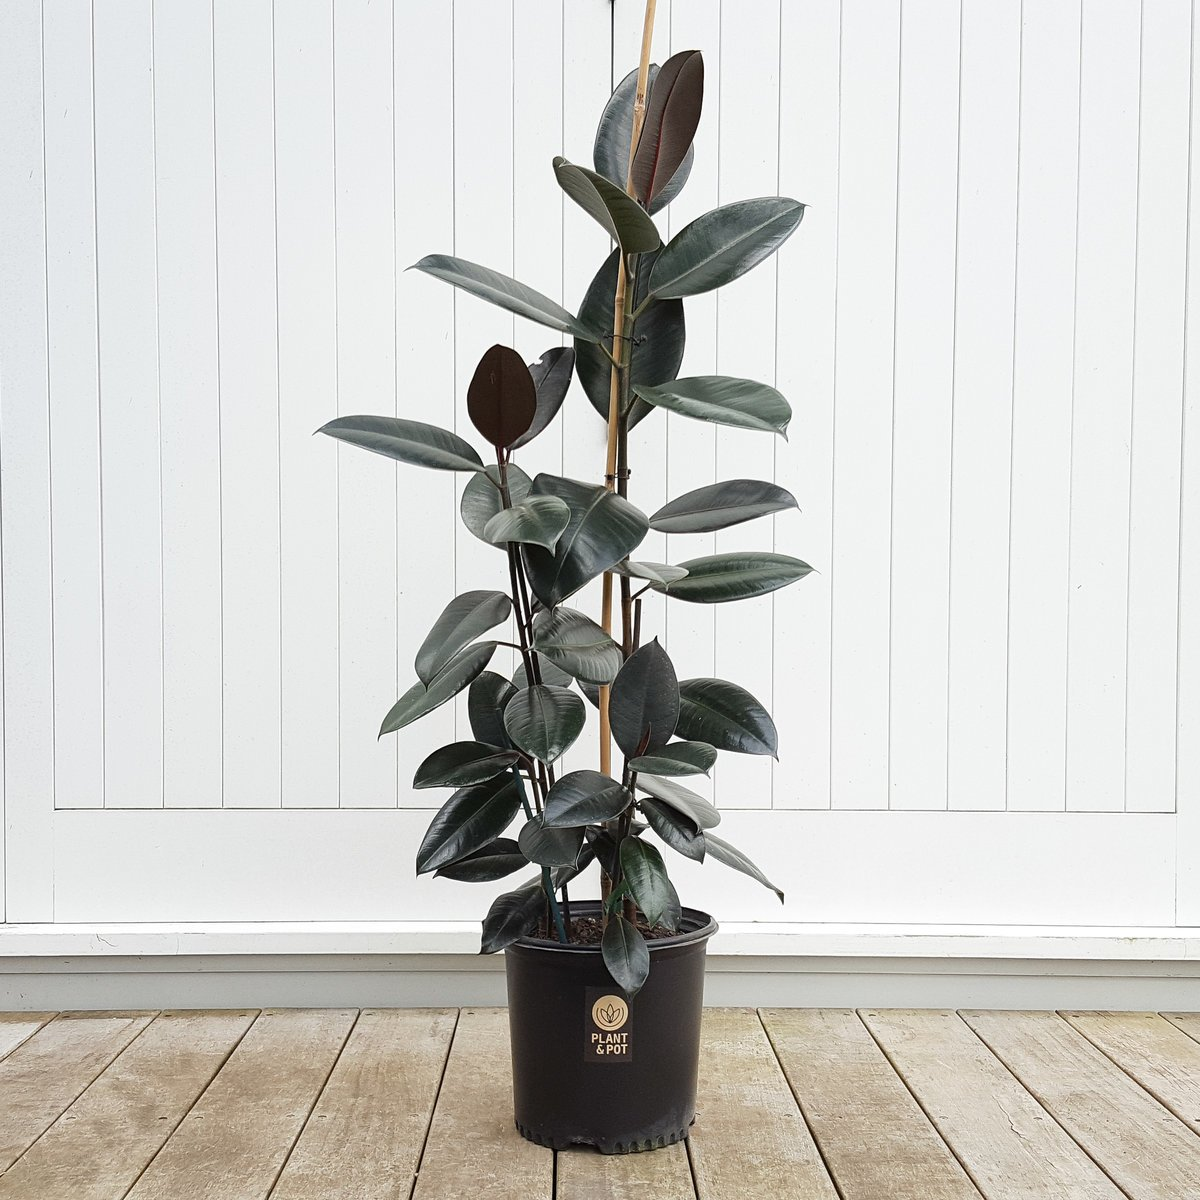 Tall Rubber Tree Black Knight Plantandpot Nz